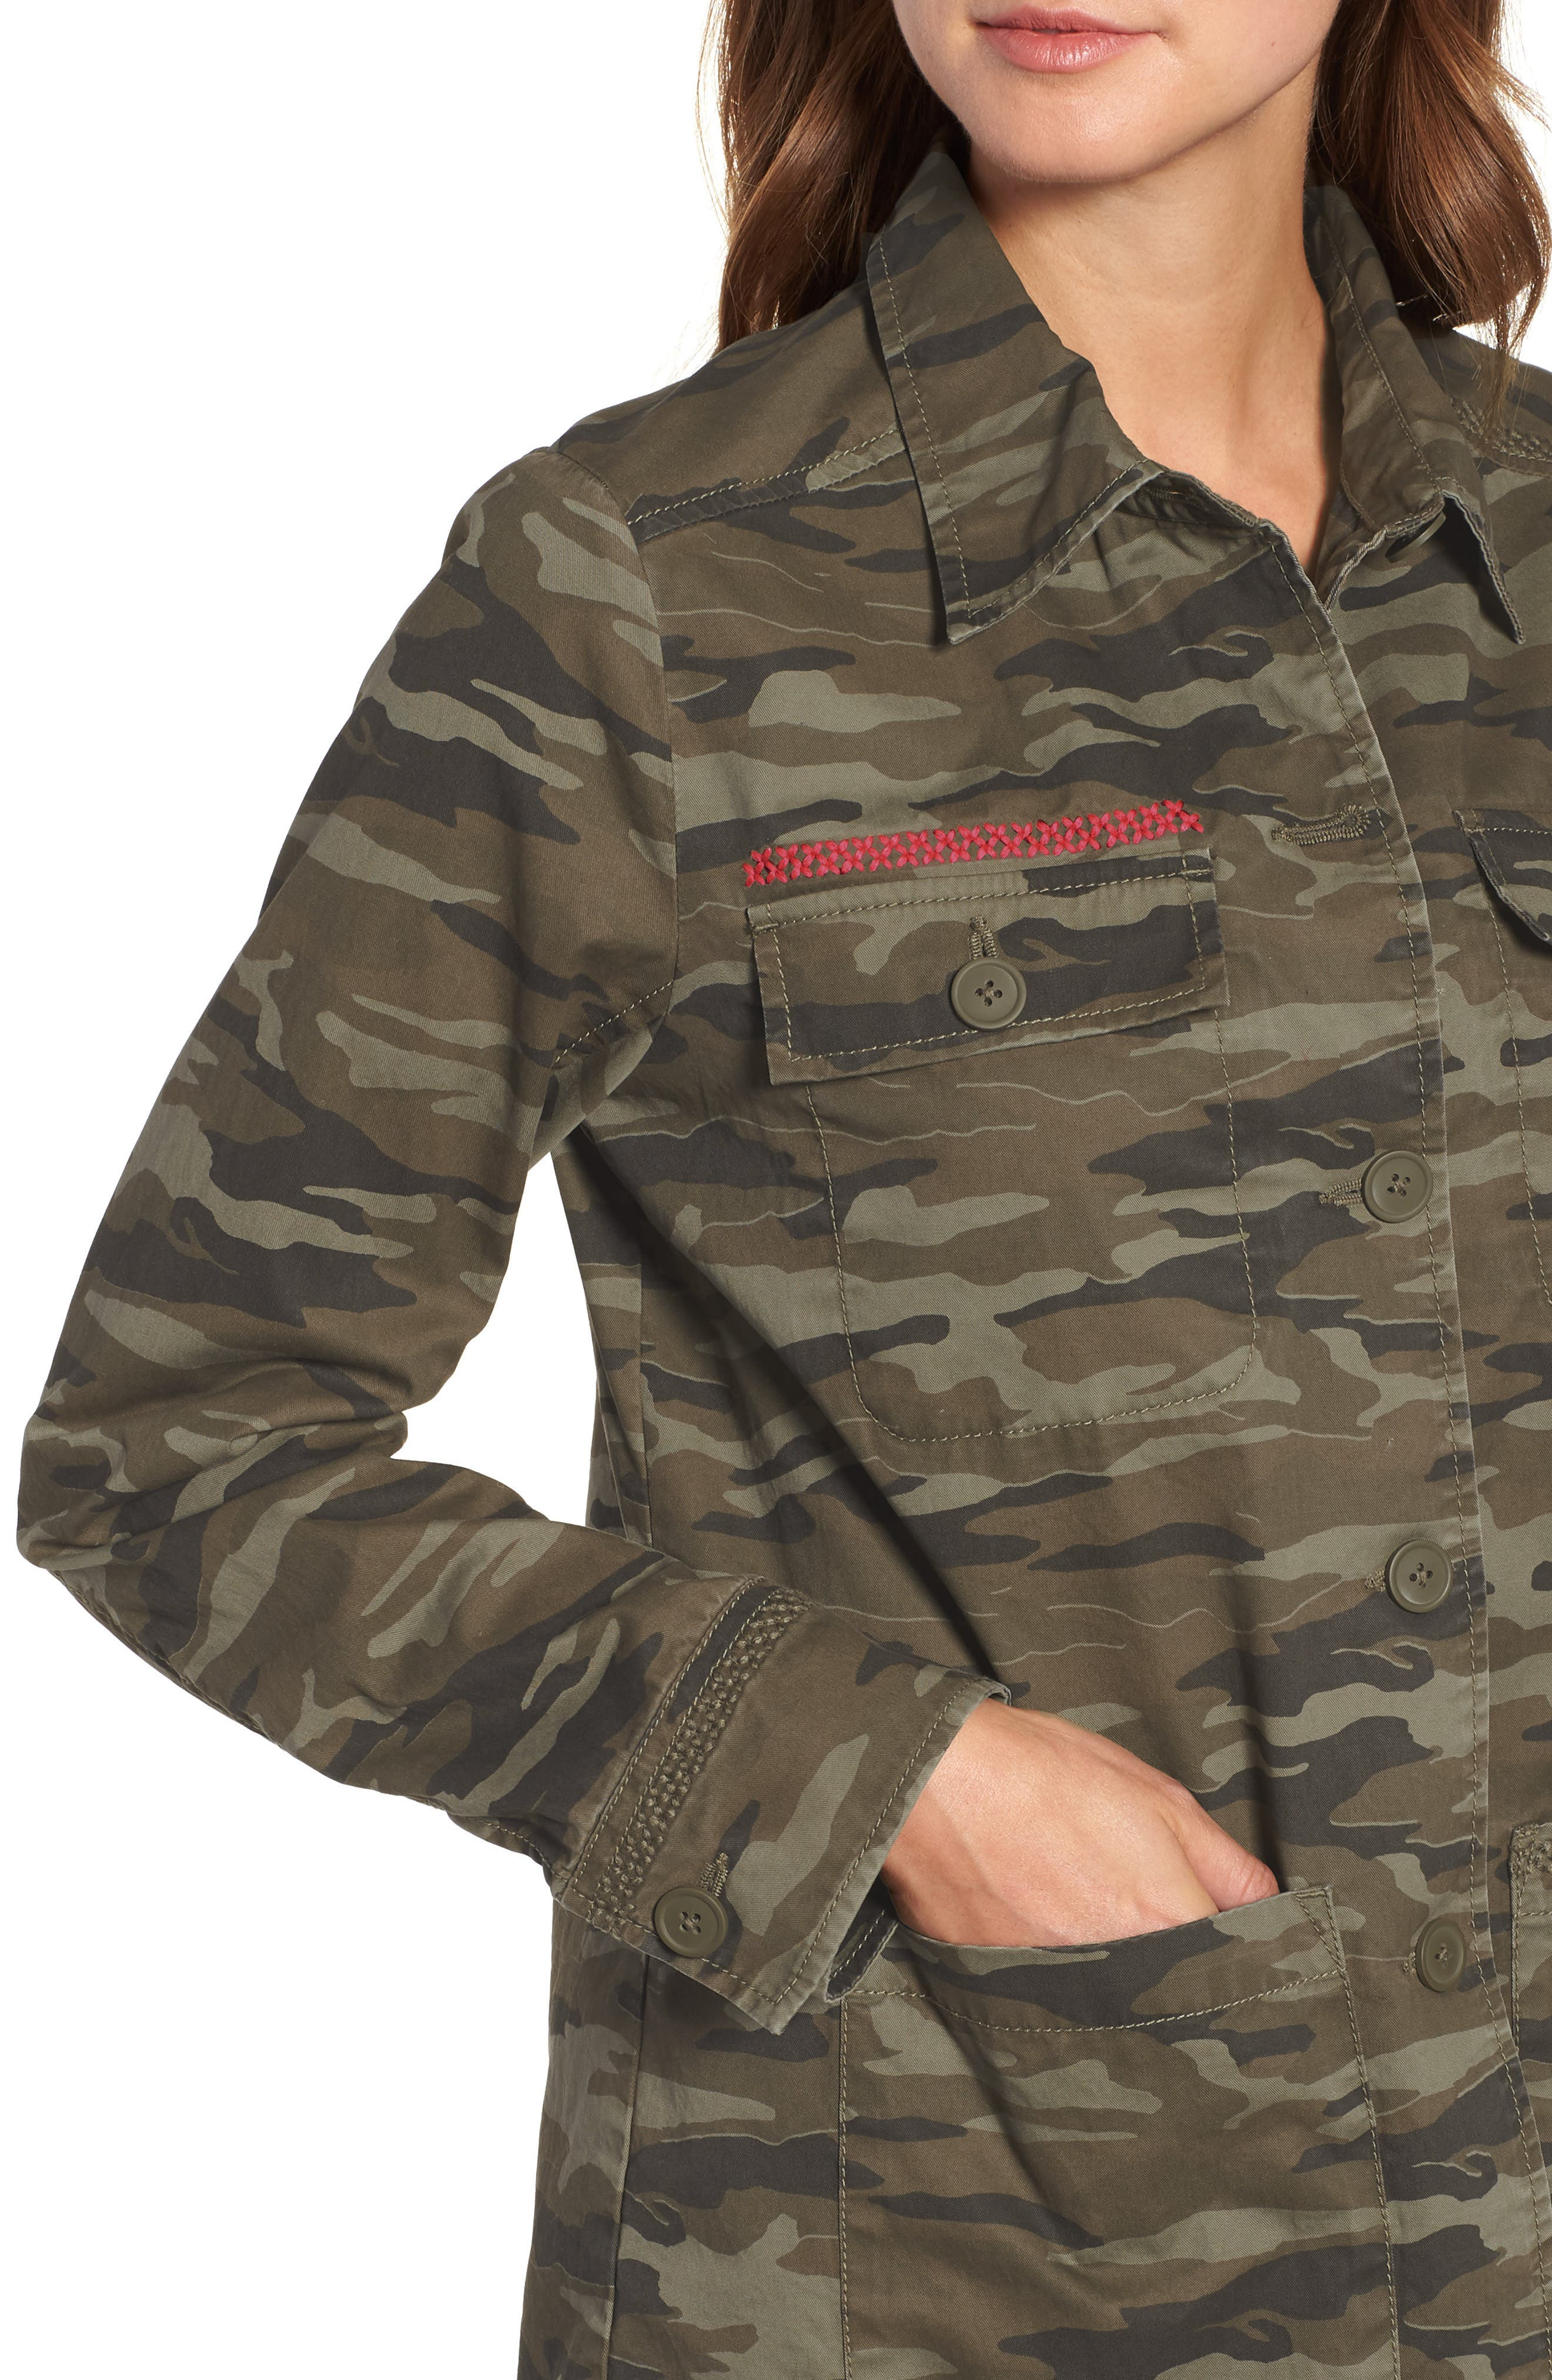 Utility Jacket,                             Alternate thumbnail 4, color,                             OLIVE CAMO PRINT